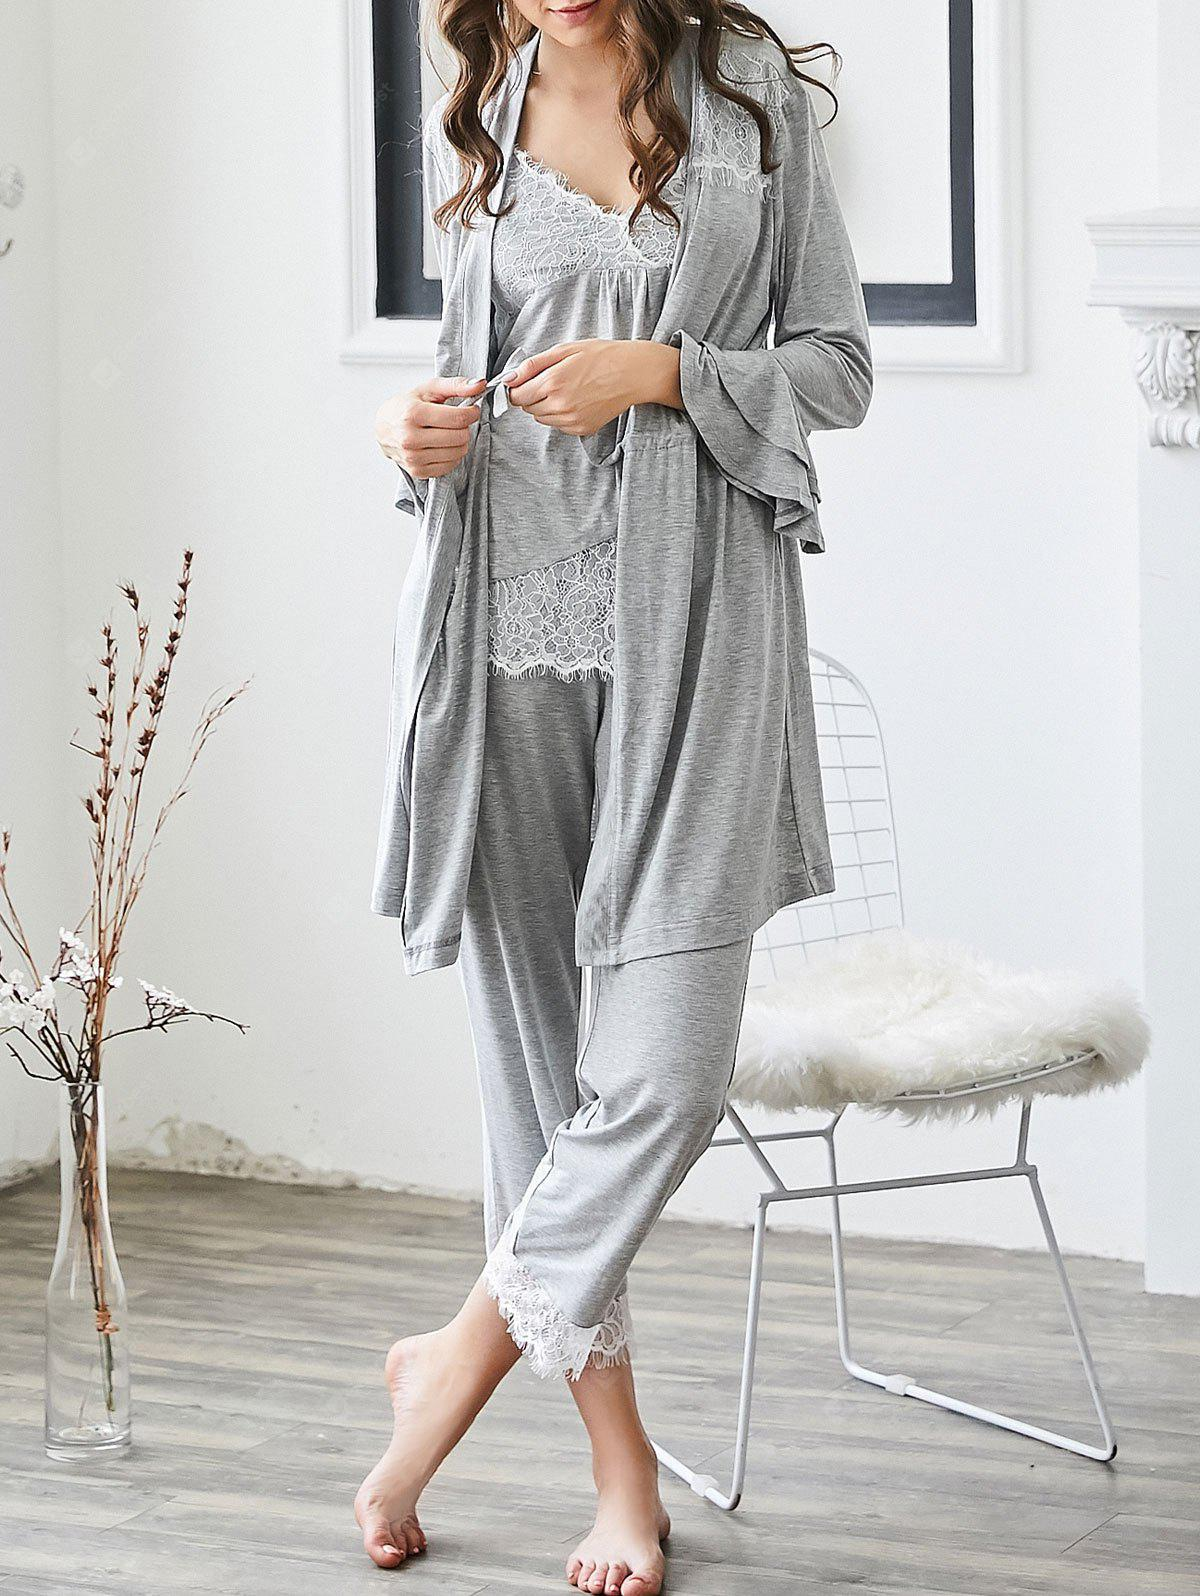 Lace Trim Loungewear Cami Top and Pants with Kimono